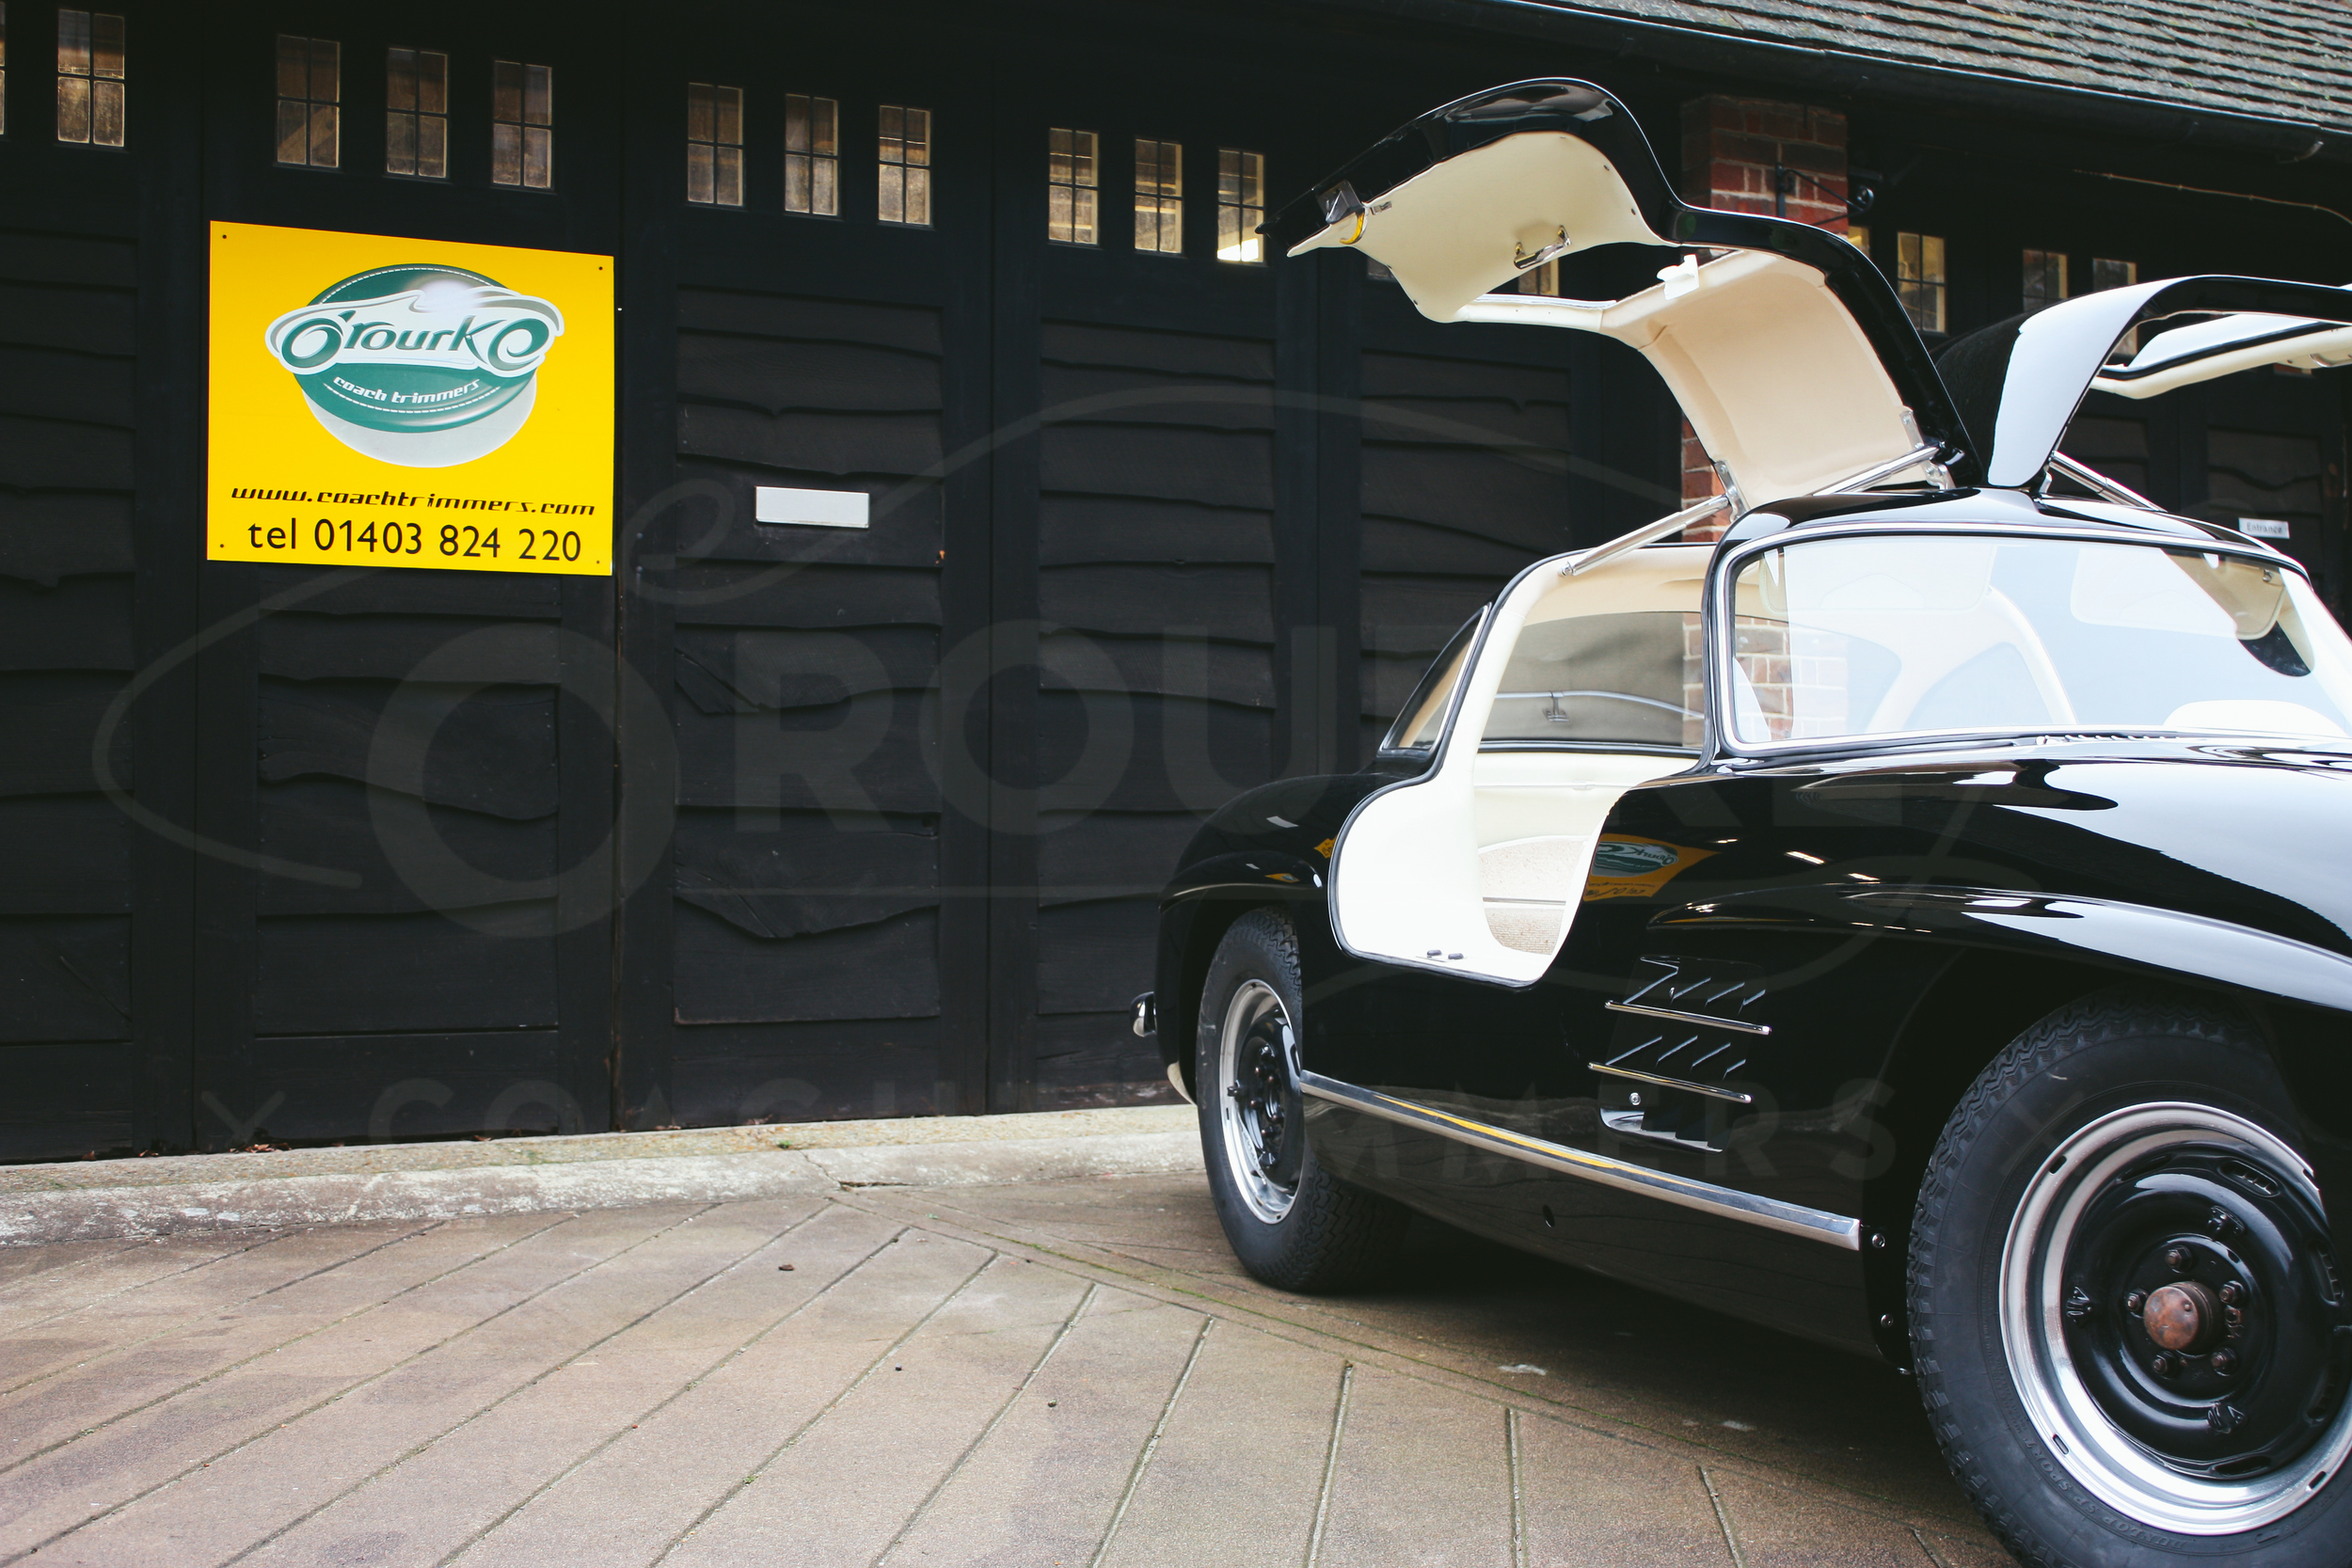 o-rourke-coachtrimmers-mercedes-gullwing-300-sl-1-0-4.jpg